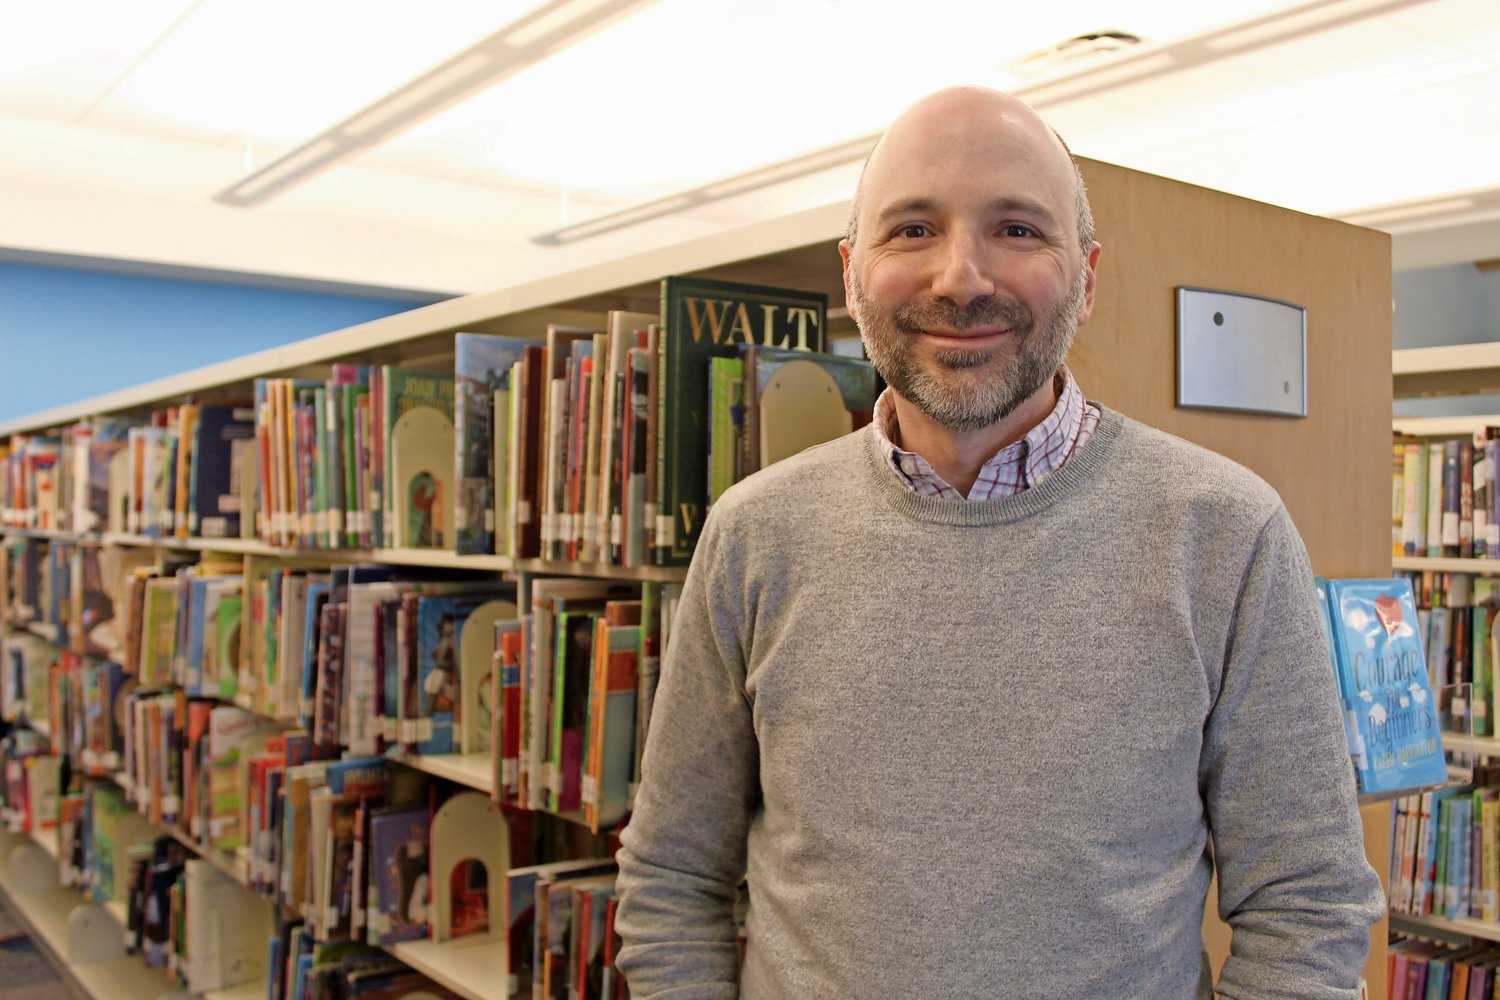 Dan Chuzmir, of Port Washington, began his stint as the new director of the Merrick Library on Jan. 1.